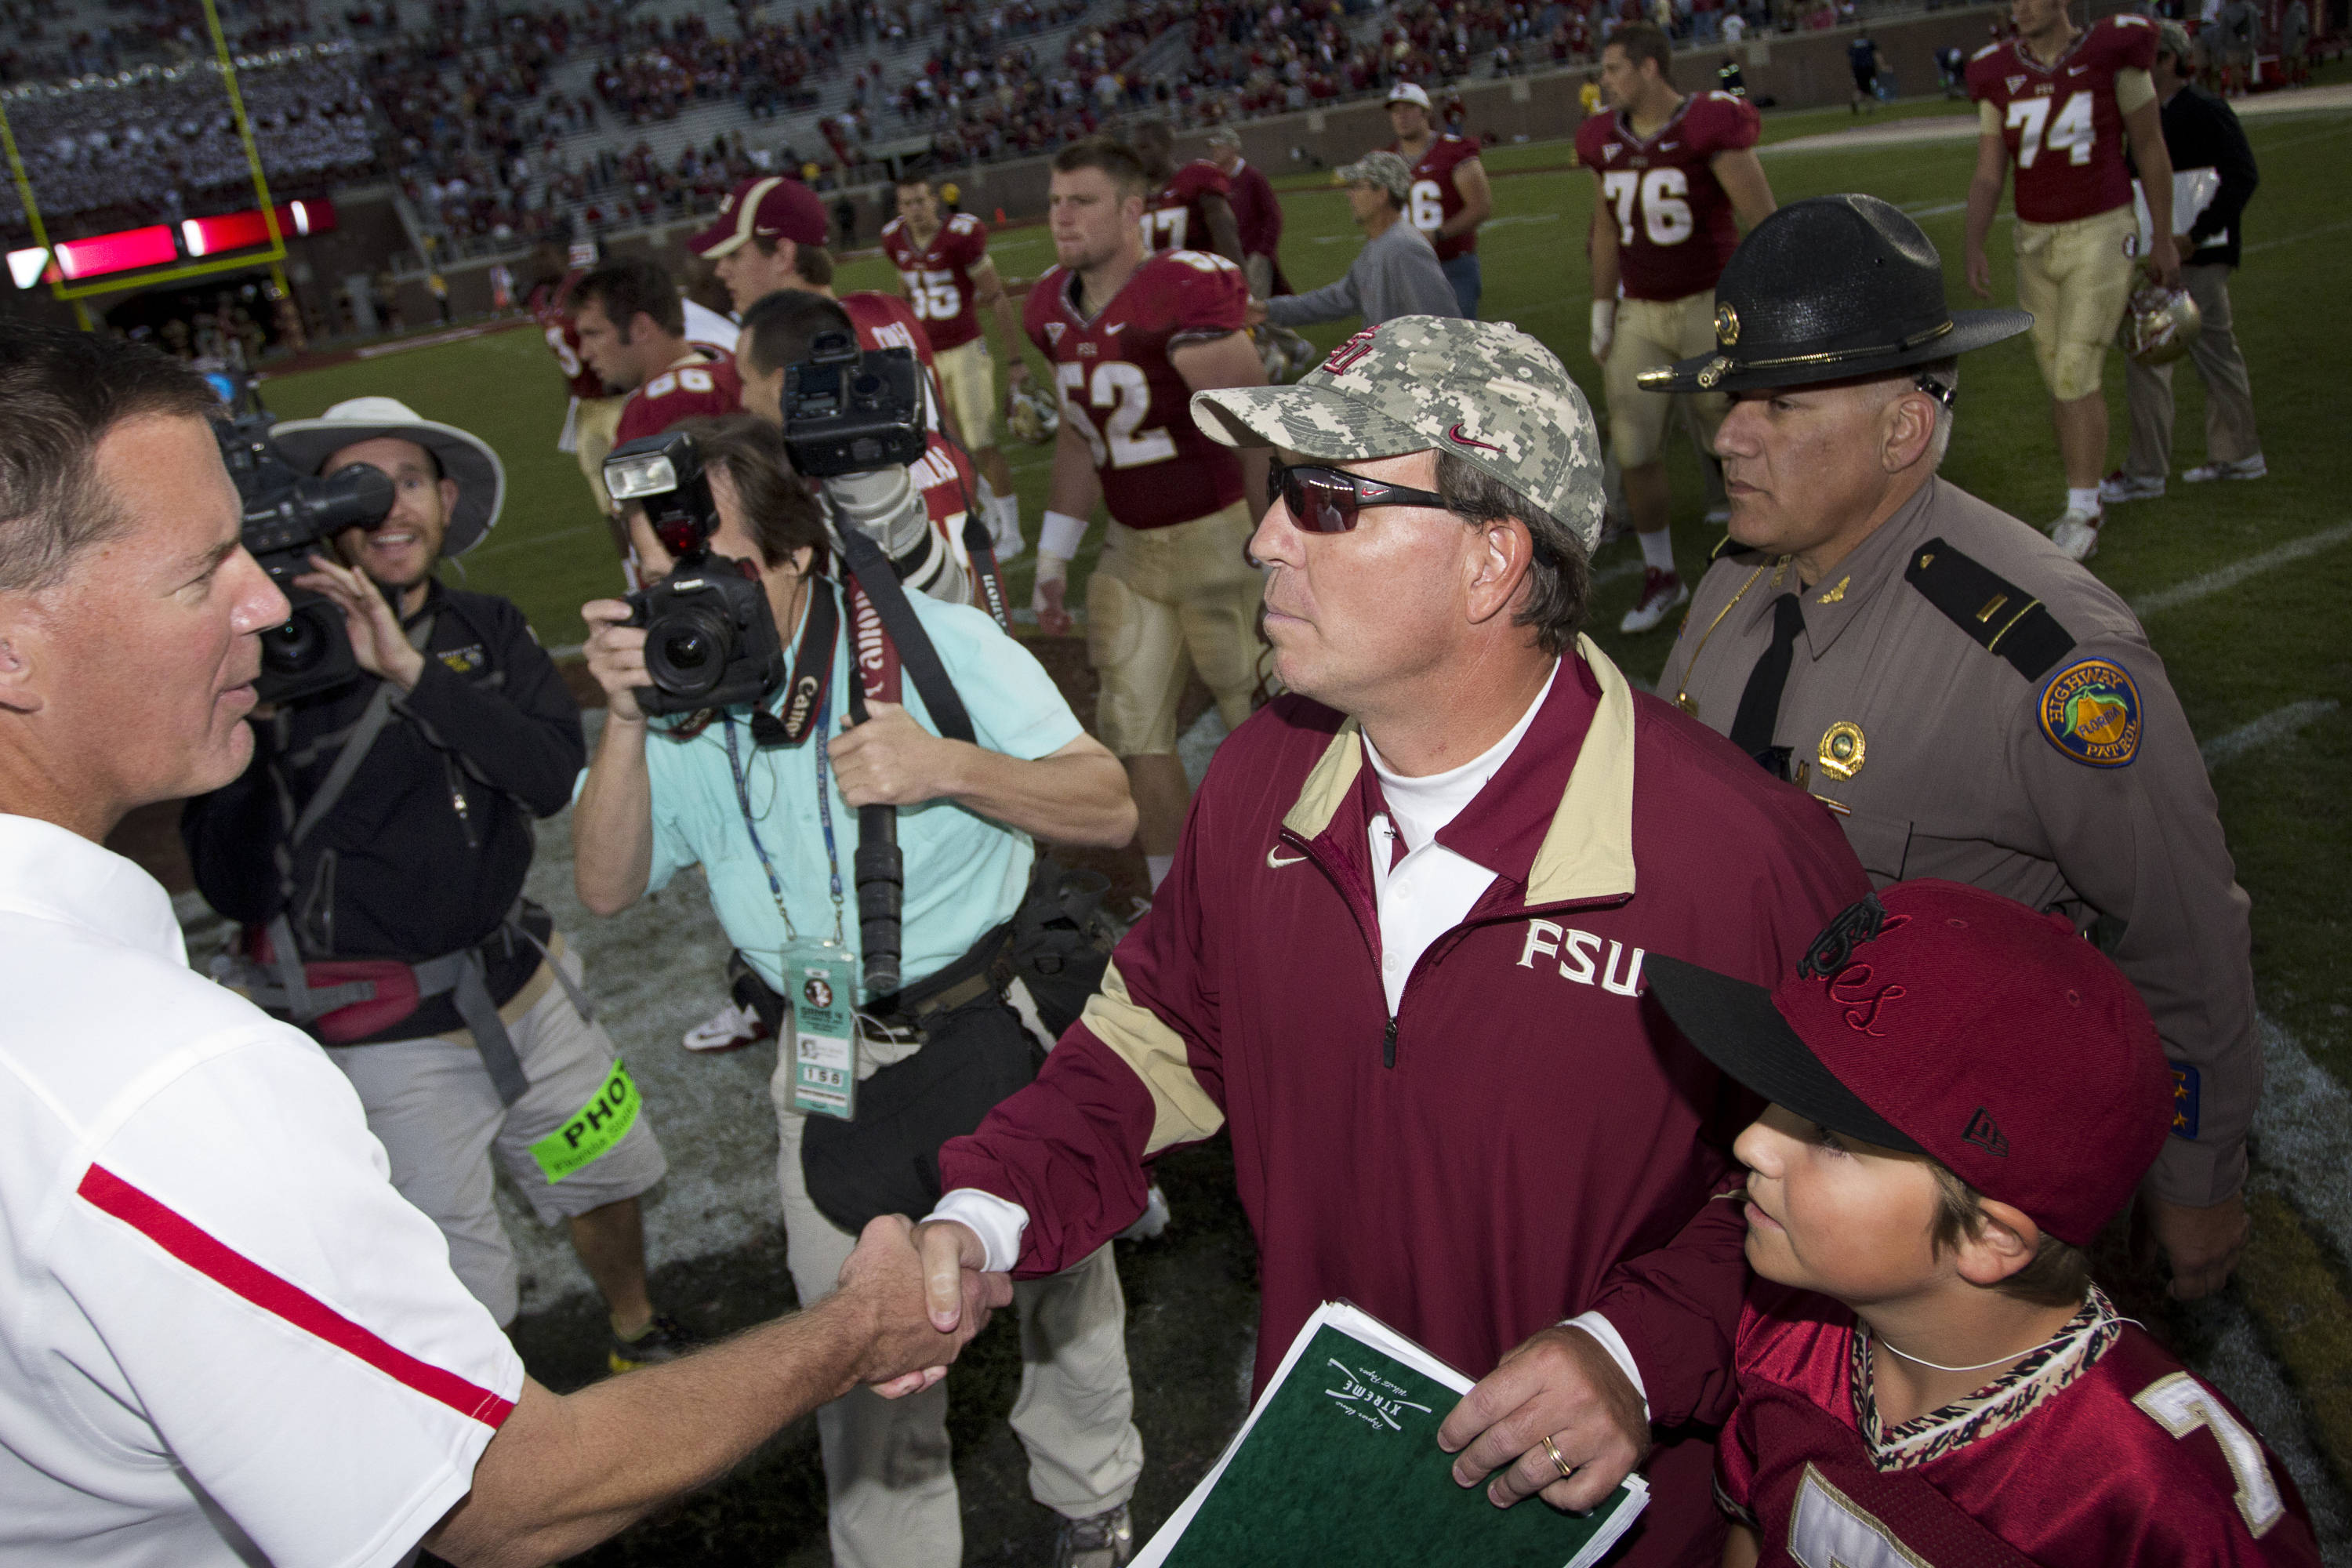 Jimbo Fisher shakes hands with Maryland's head coach after win against Maryland in Tallahassee, Florida on October 22, 2011.